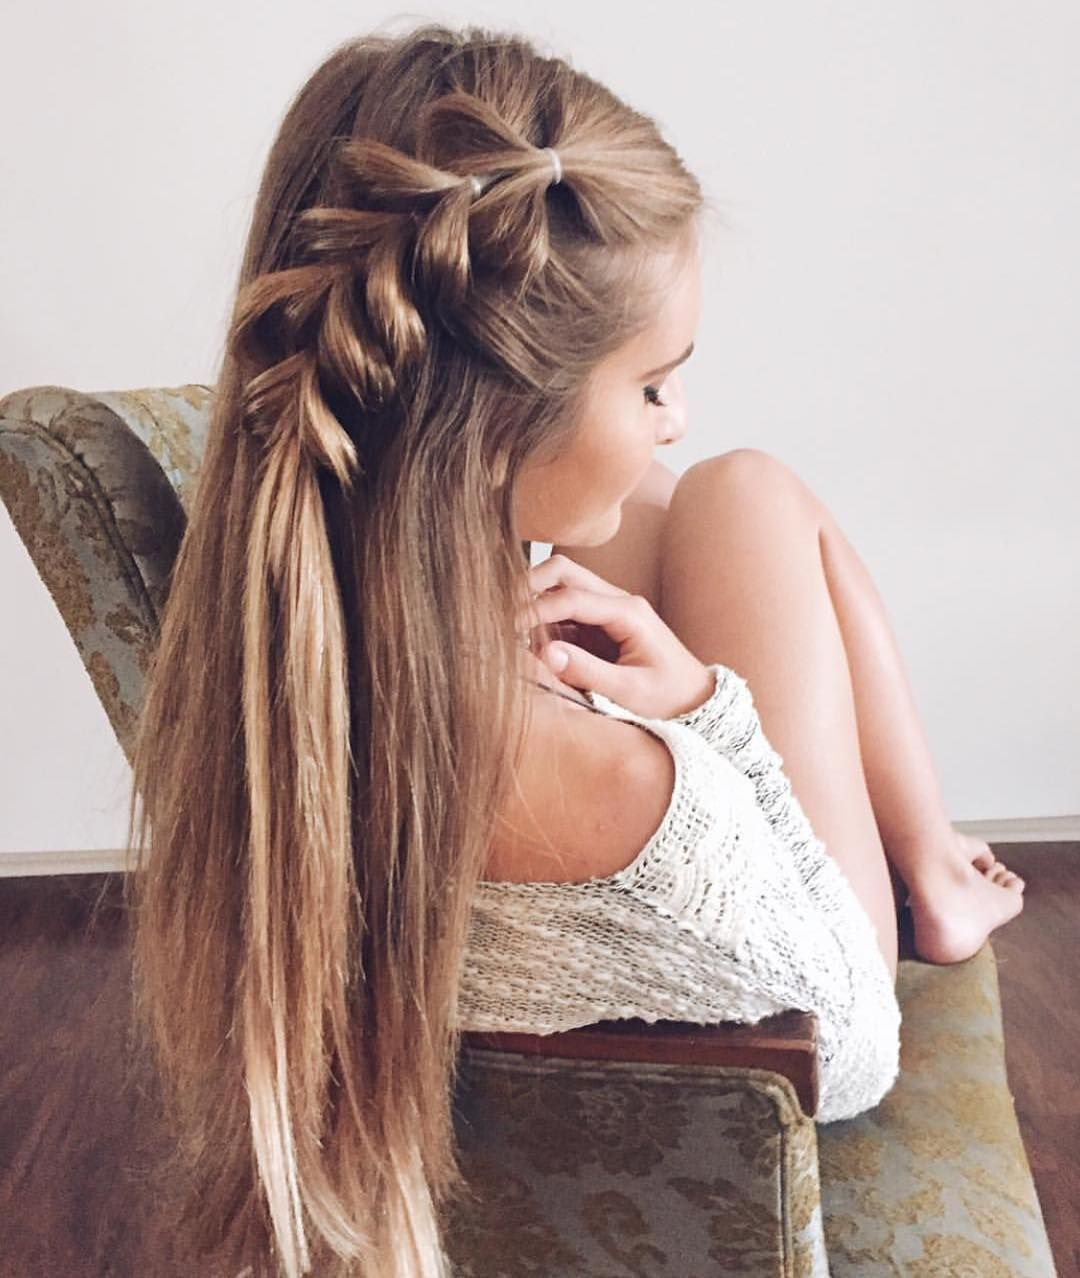 Double tap if you like this hairstyle  @josie_sanders